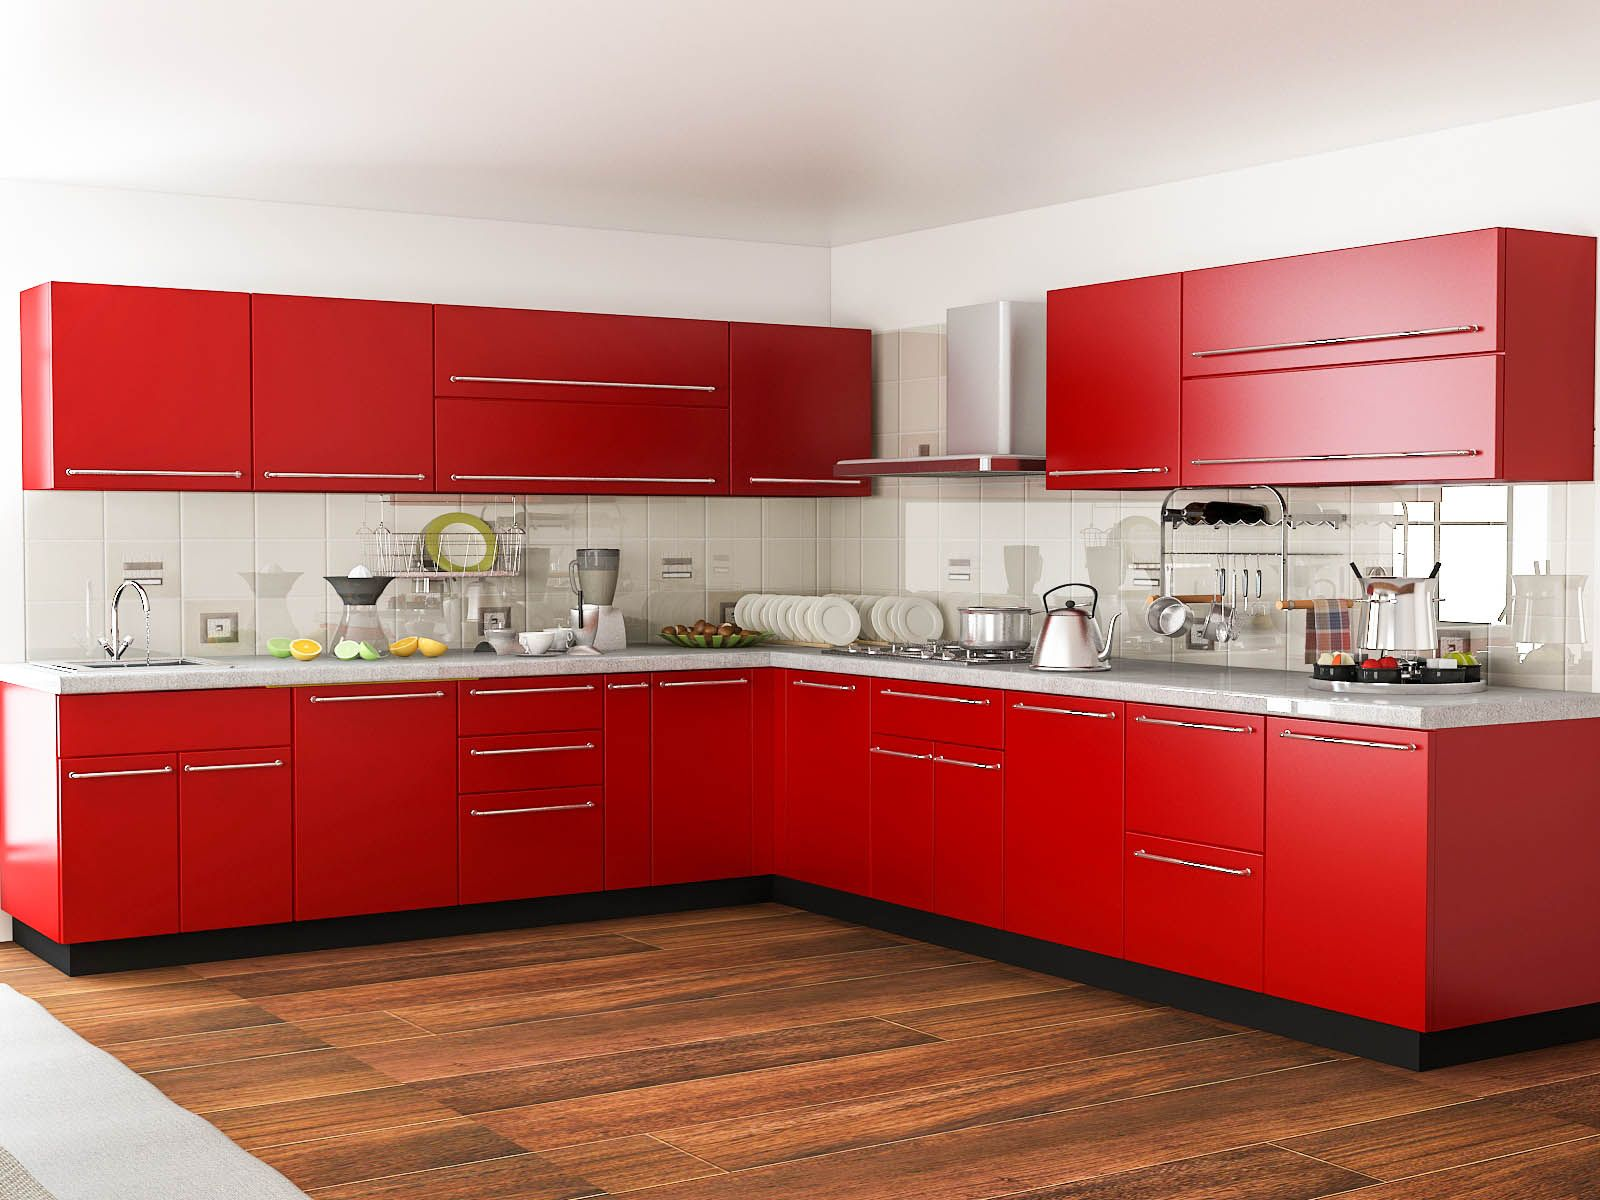 customfurnish com l shaped red kitchen l shaped modular kitchen kitchen design kitchen modular on l kitchen id=22574